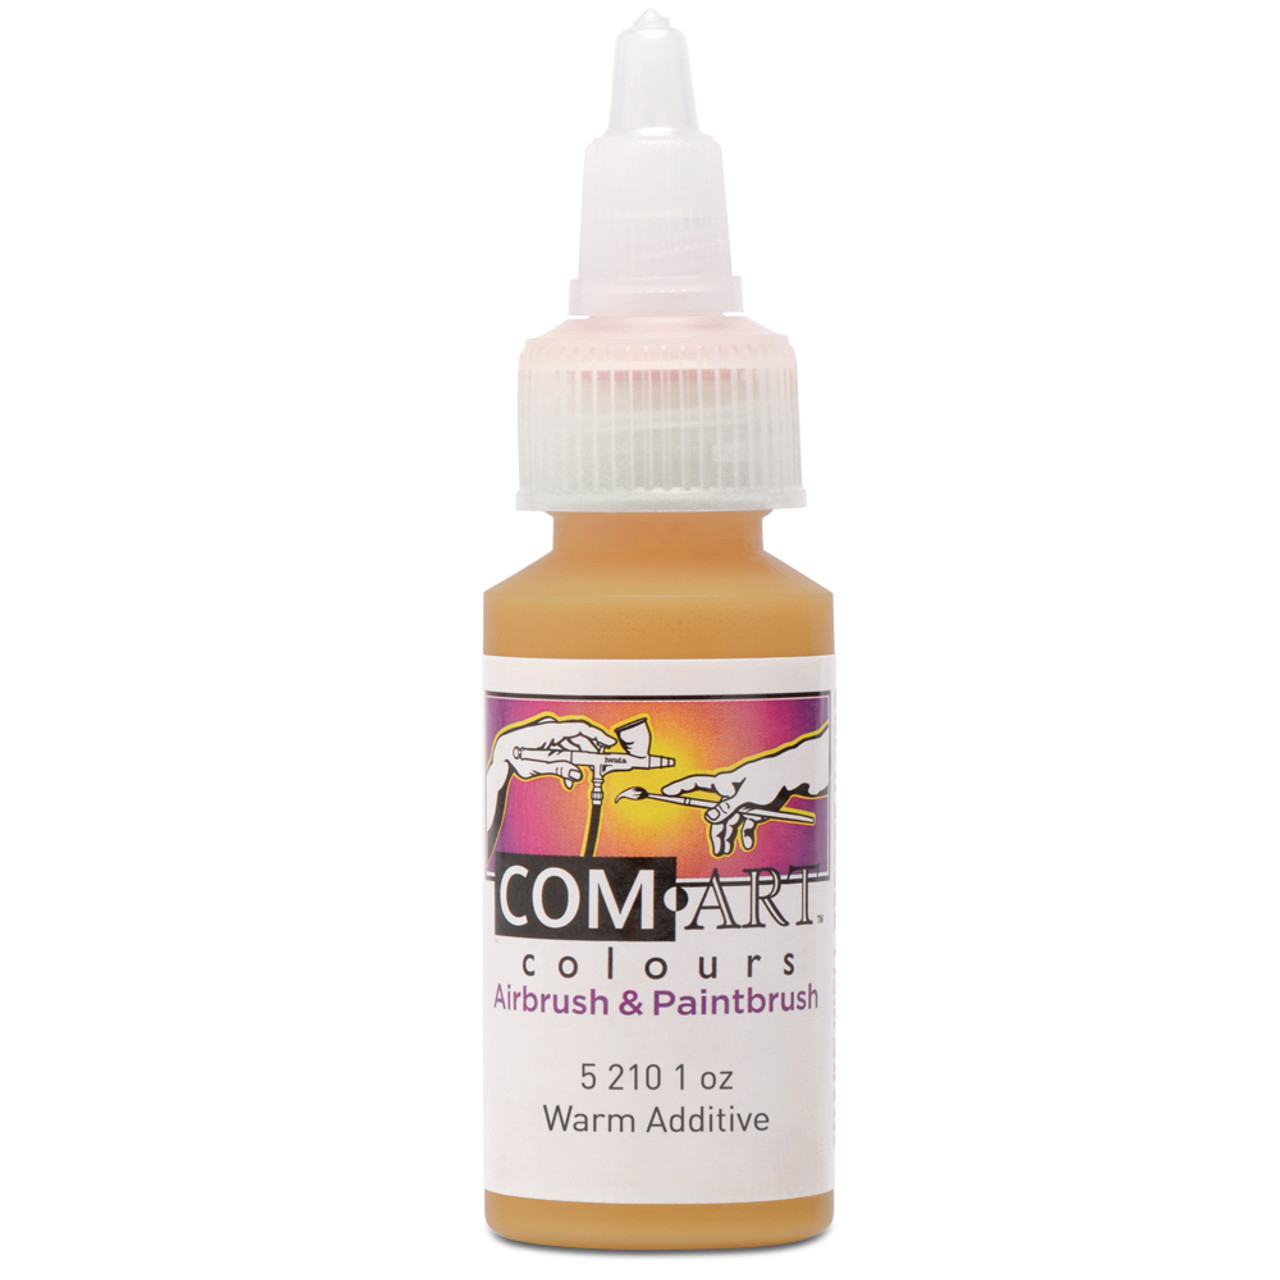 Com Art Colours Water-Based Acrylic Transparent Warm Additive 1oz For Airbrush And Paintbrush